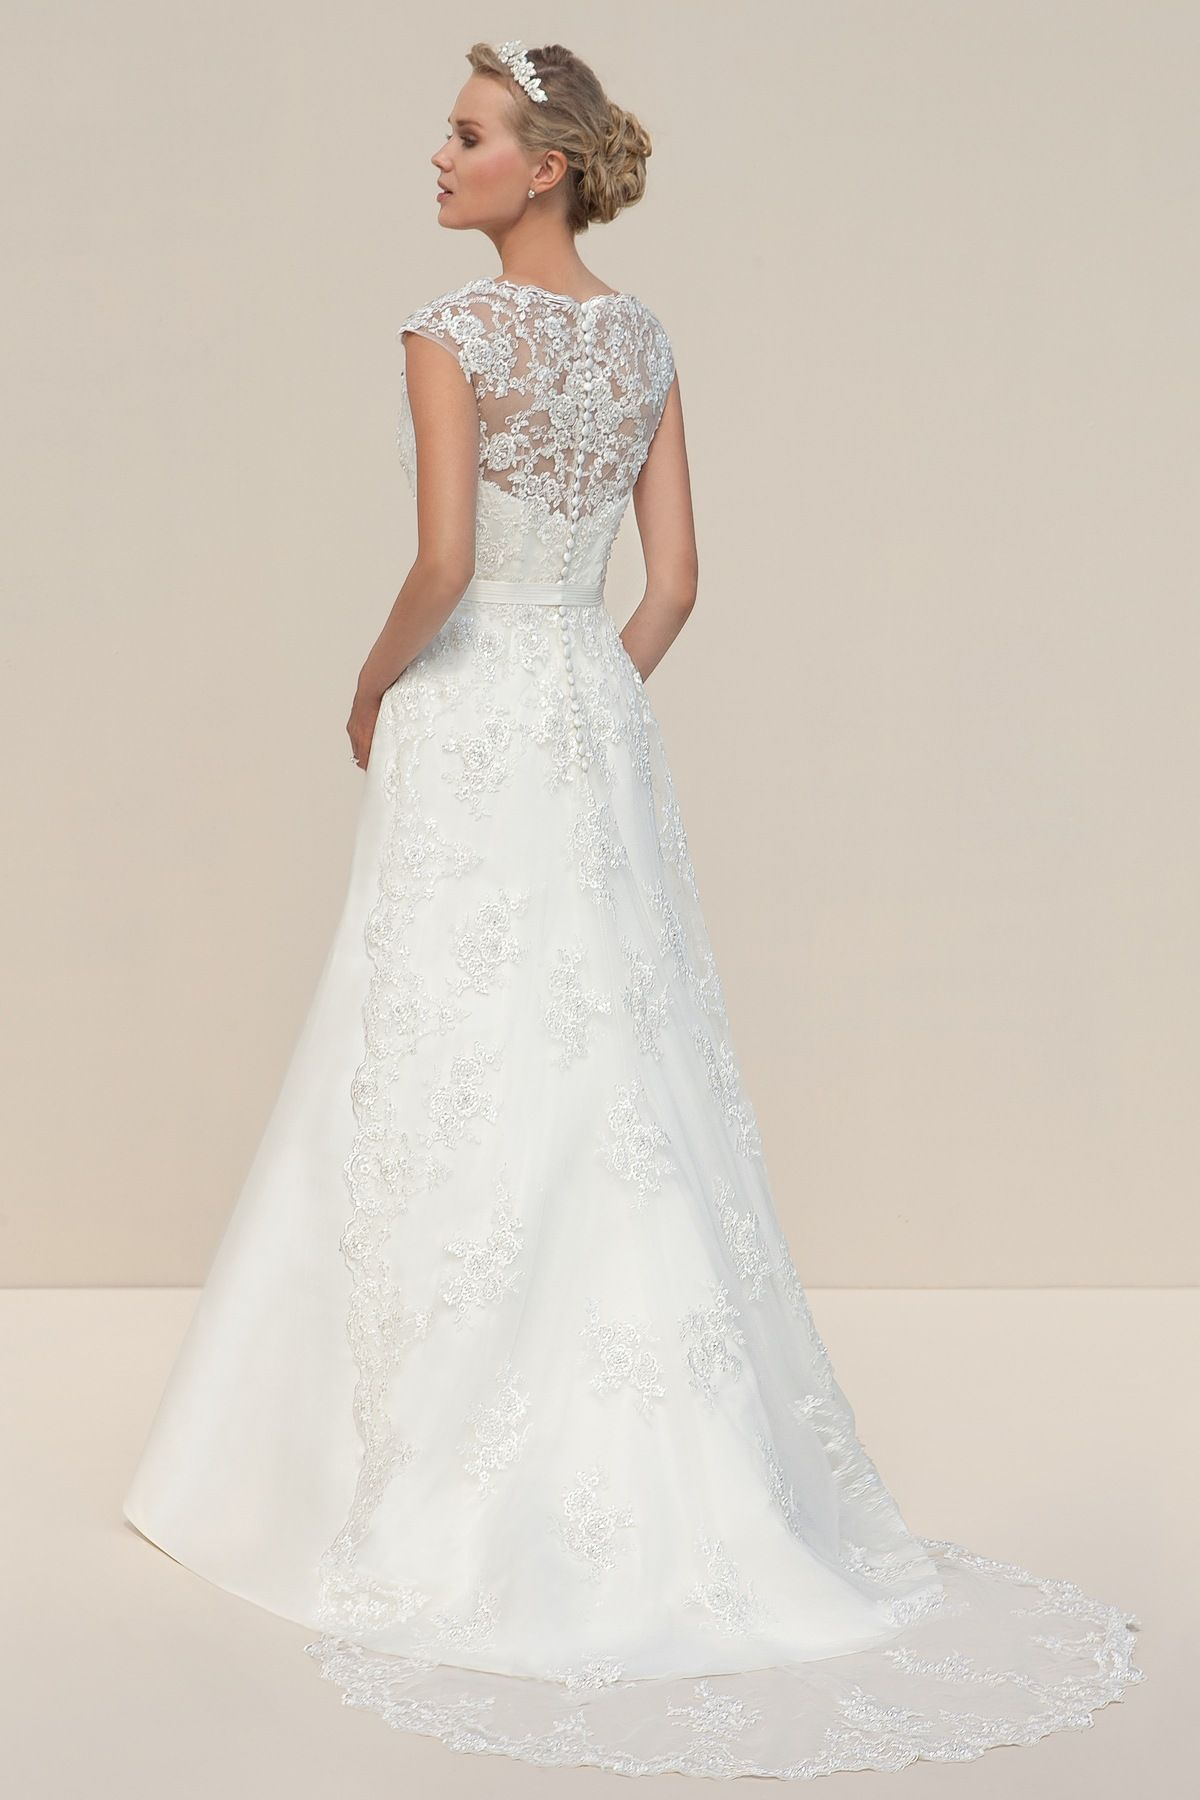 Mark Lesley Bridal Collection From Lace Dress Ideas